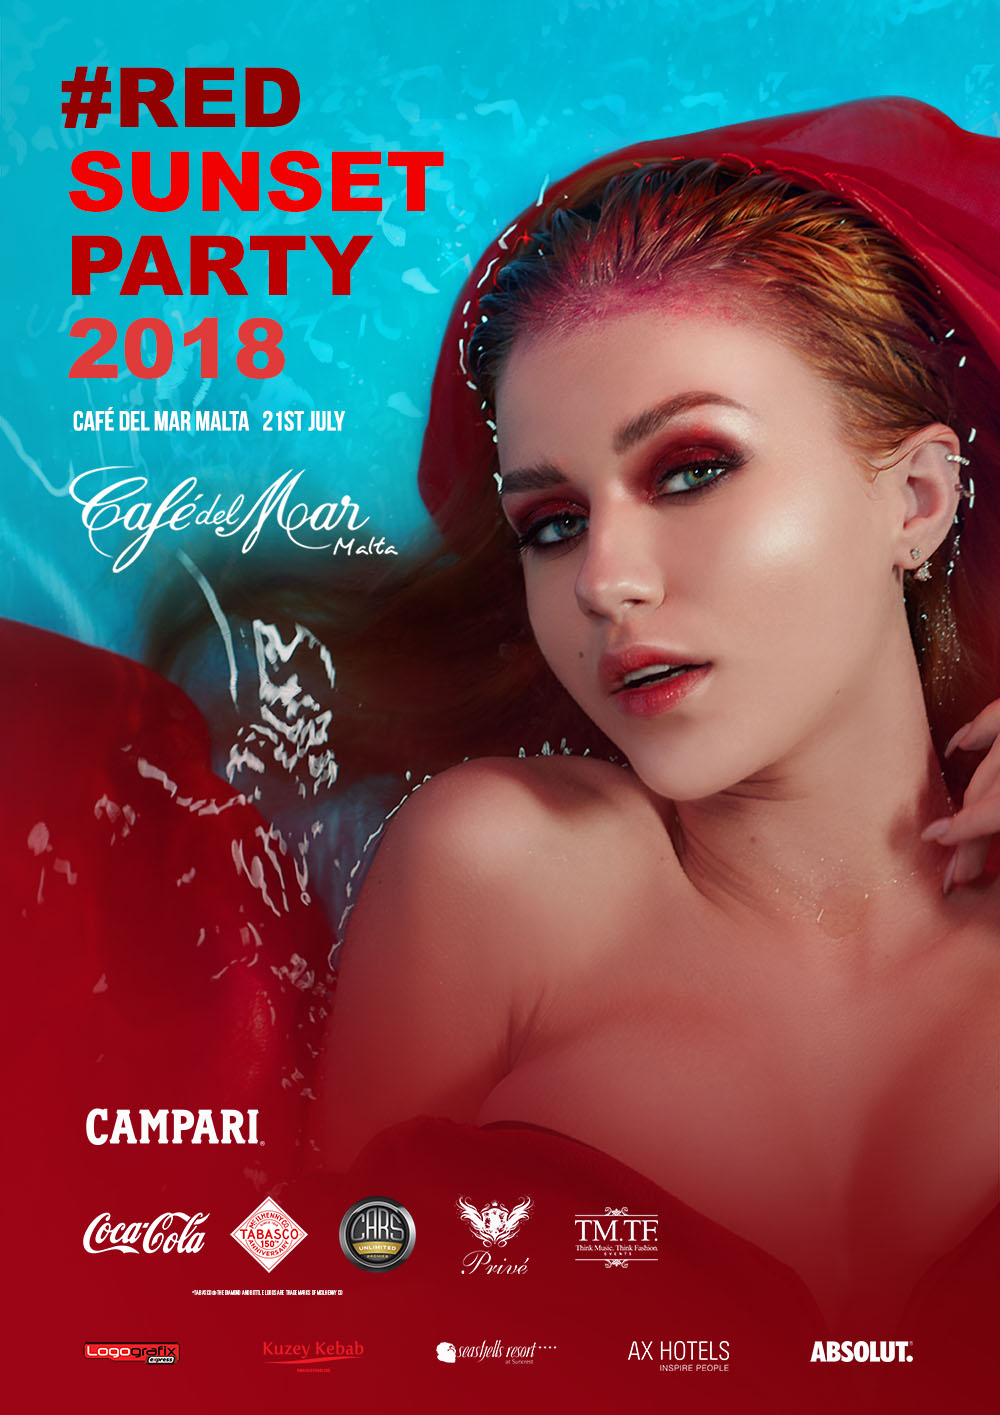 Red Sunset Party 2018 flyer